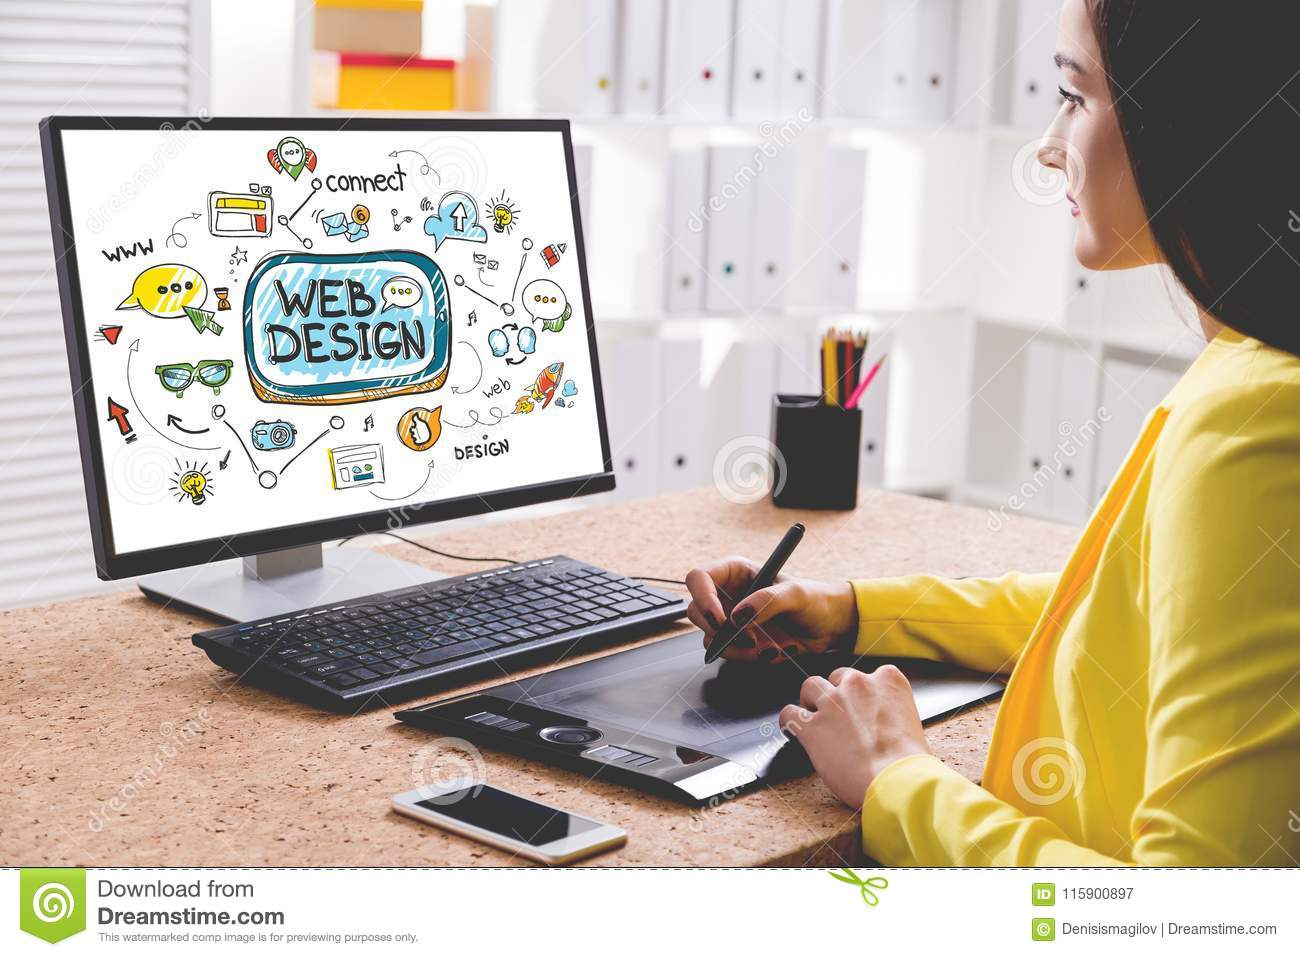 Woman designer drawing a web design sketch